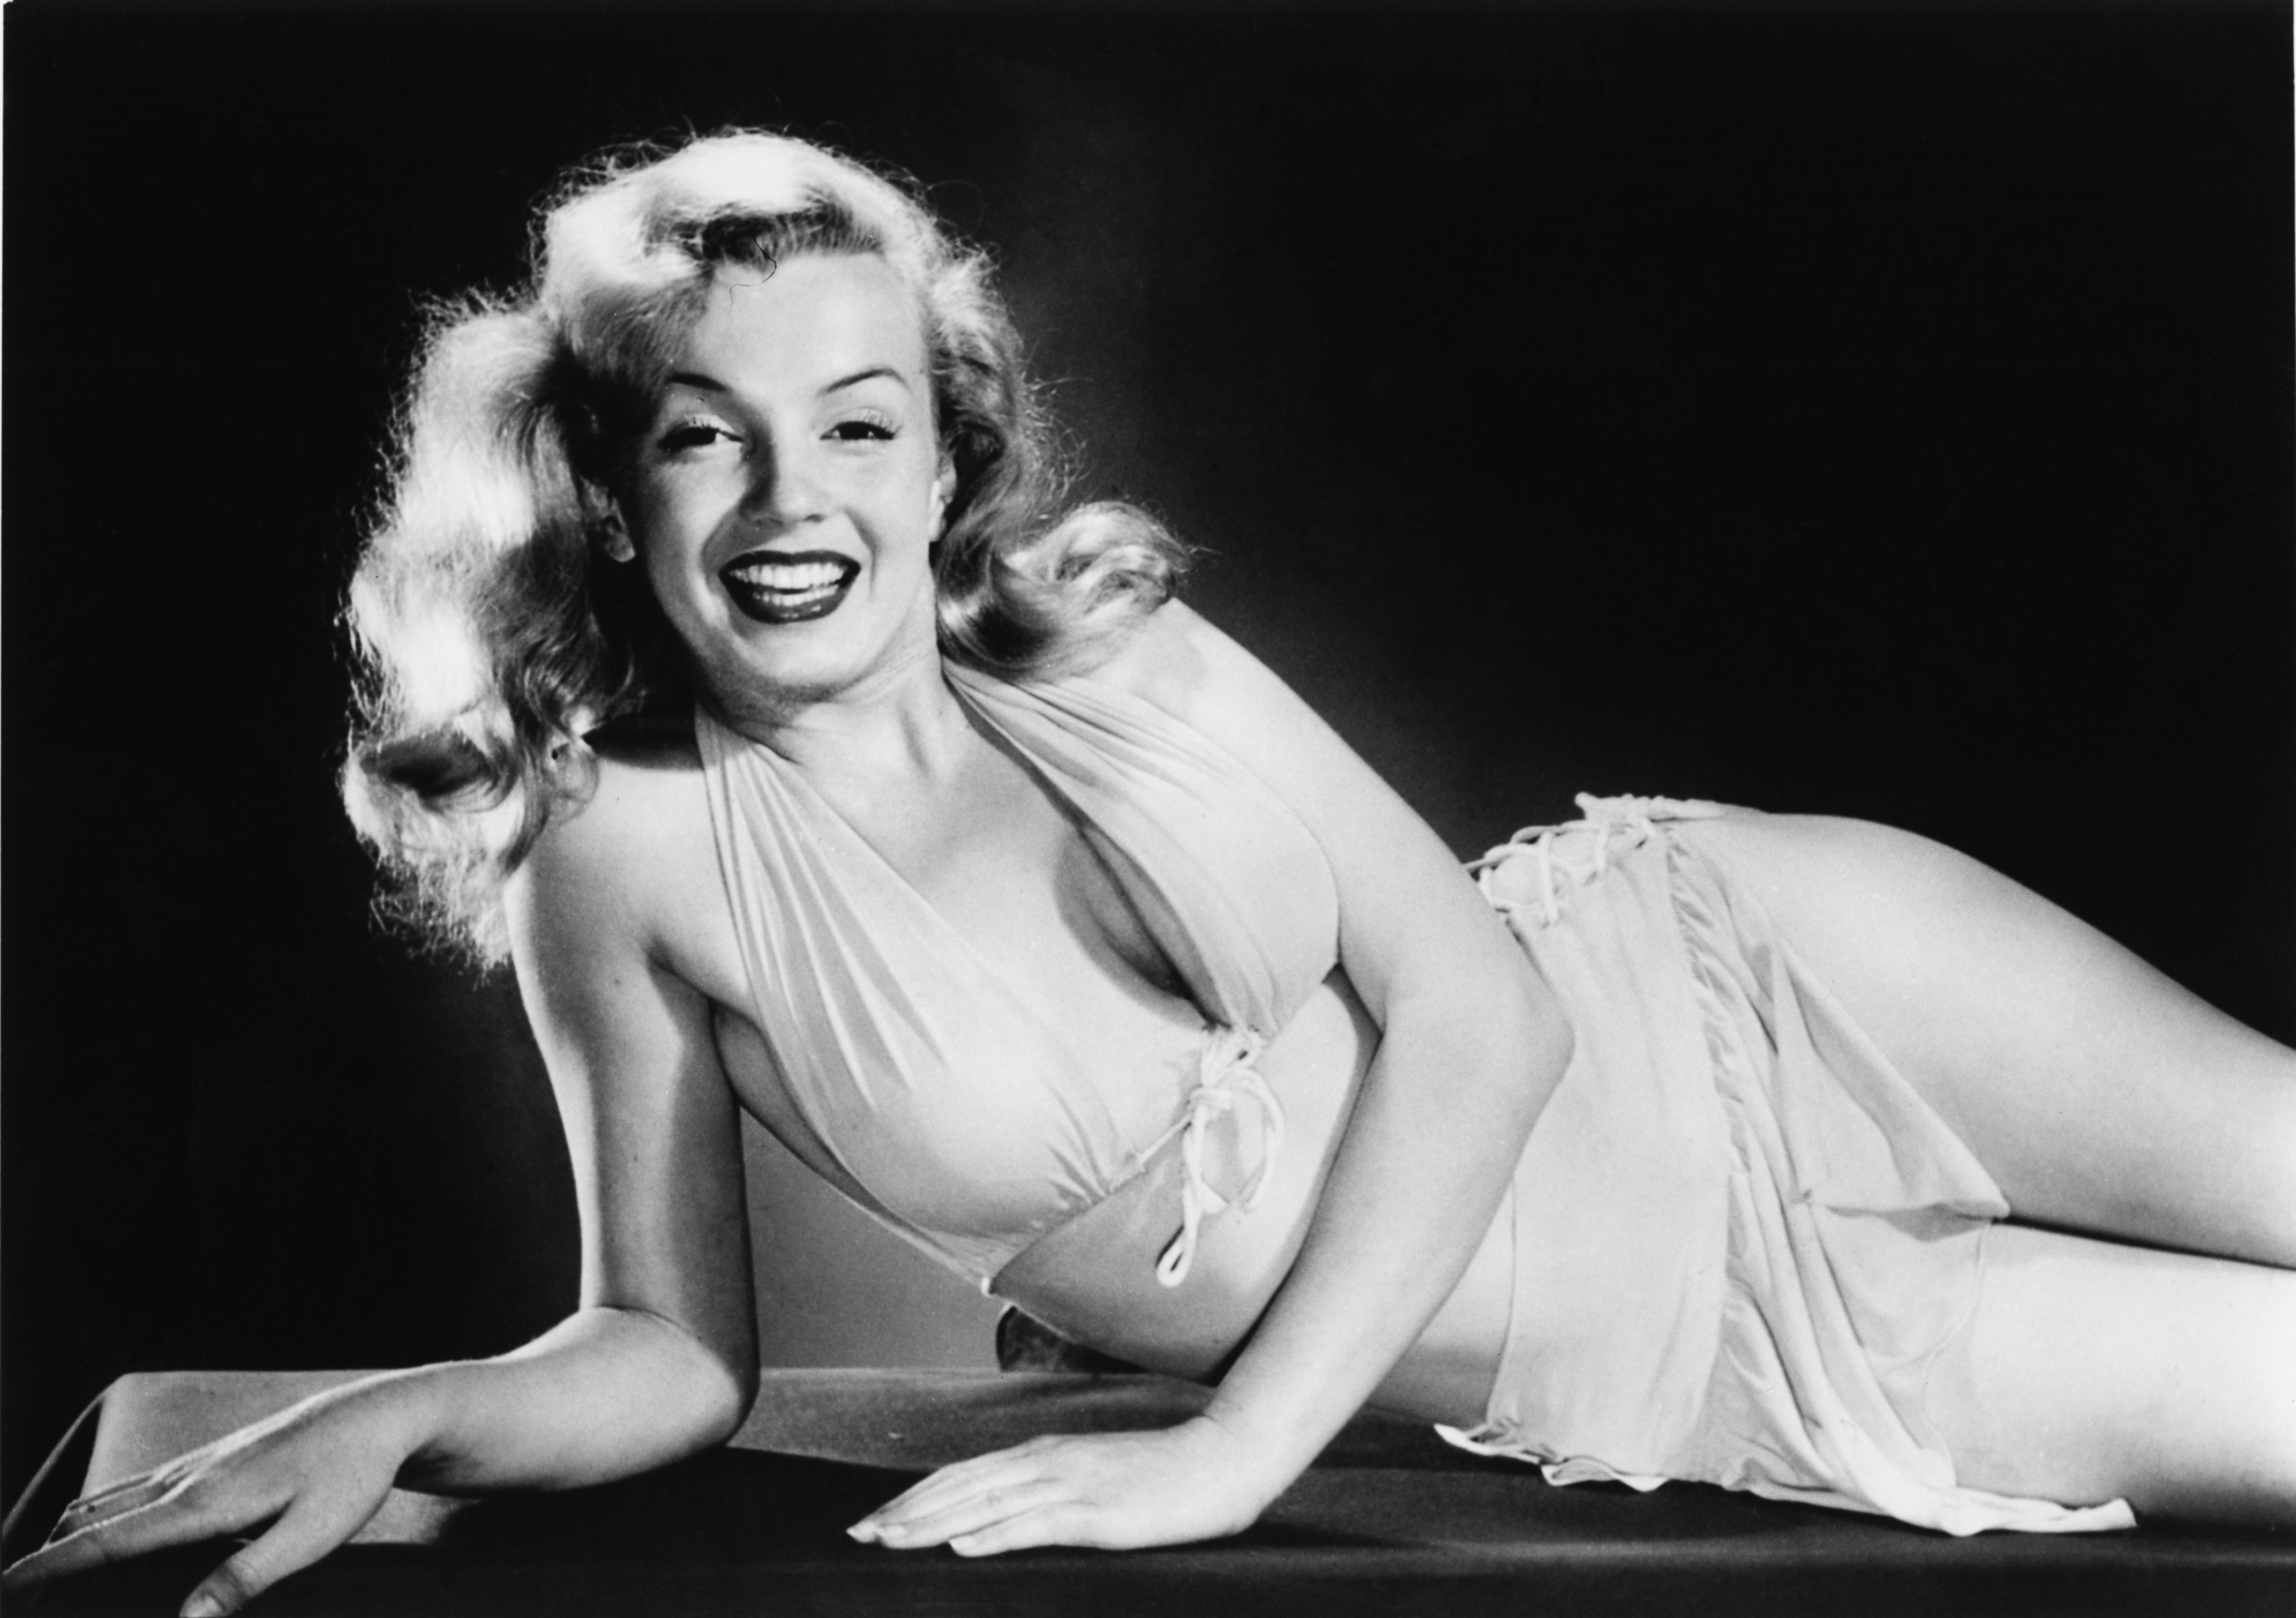 an analysis of inner thoughts in life and death of marilyn monroe by bob gonzalez